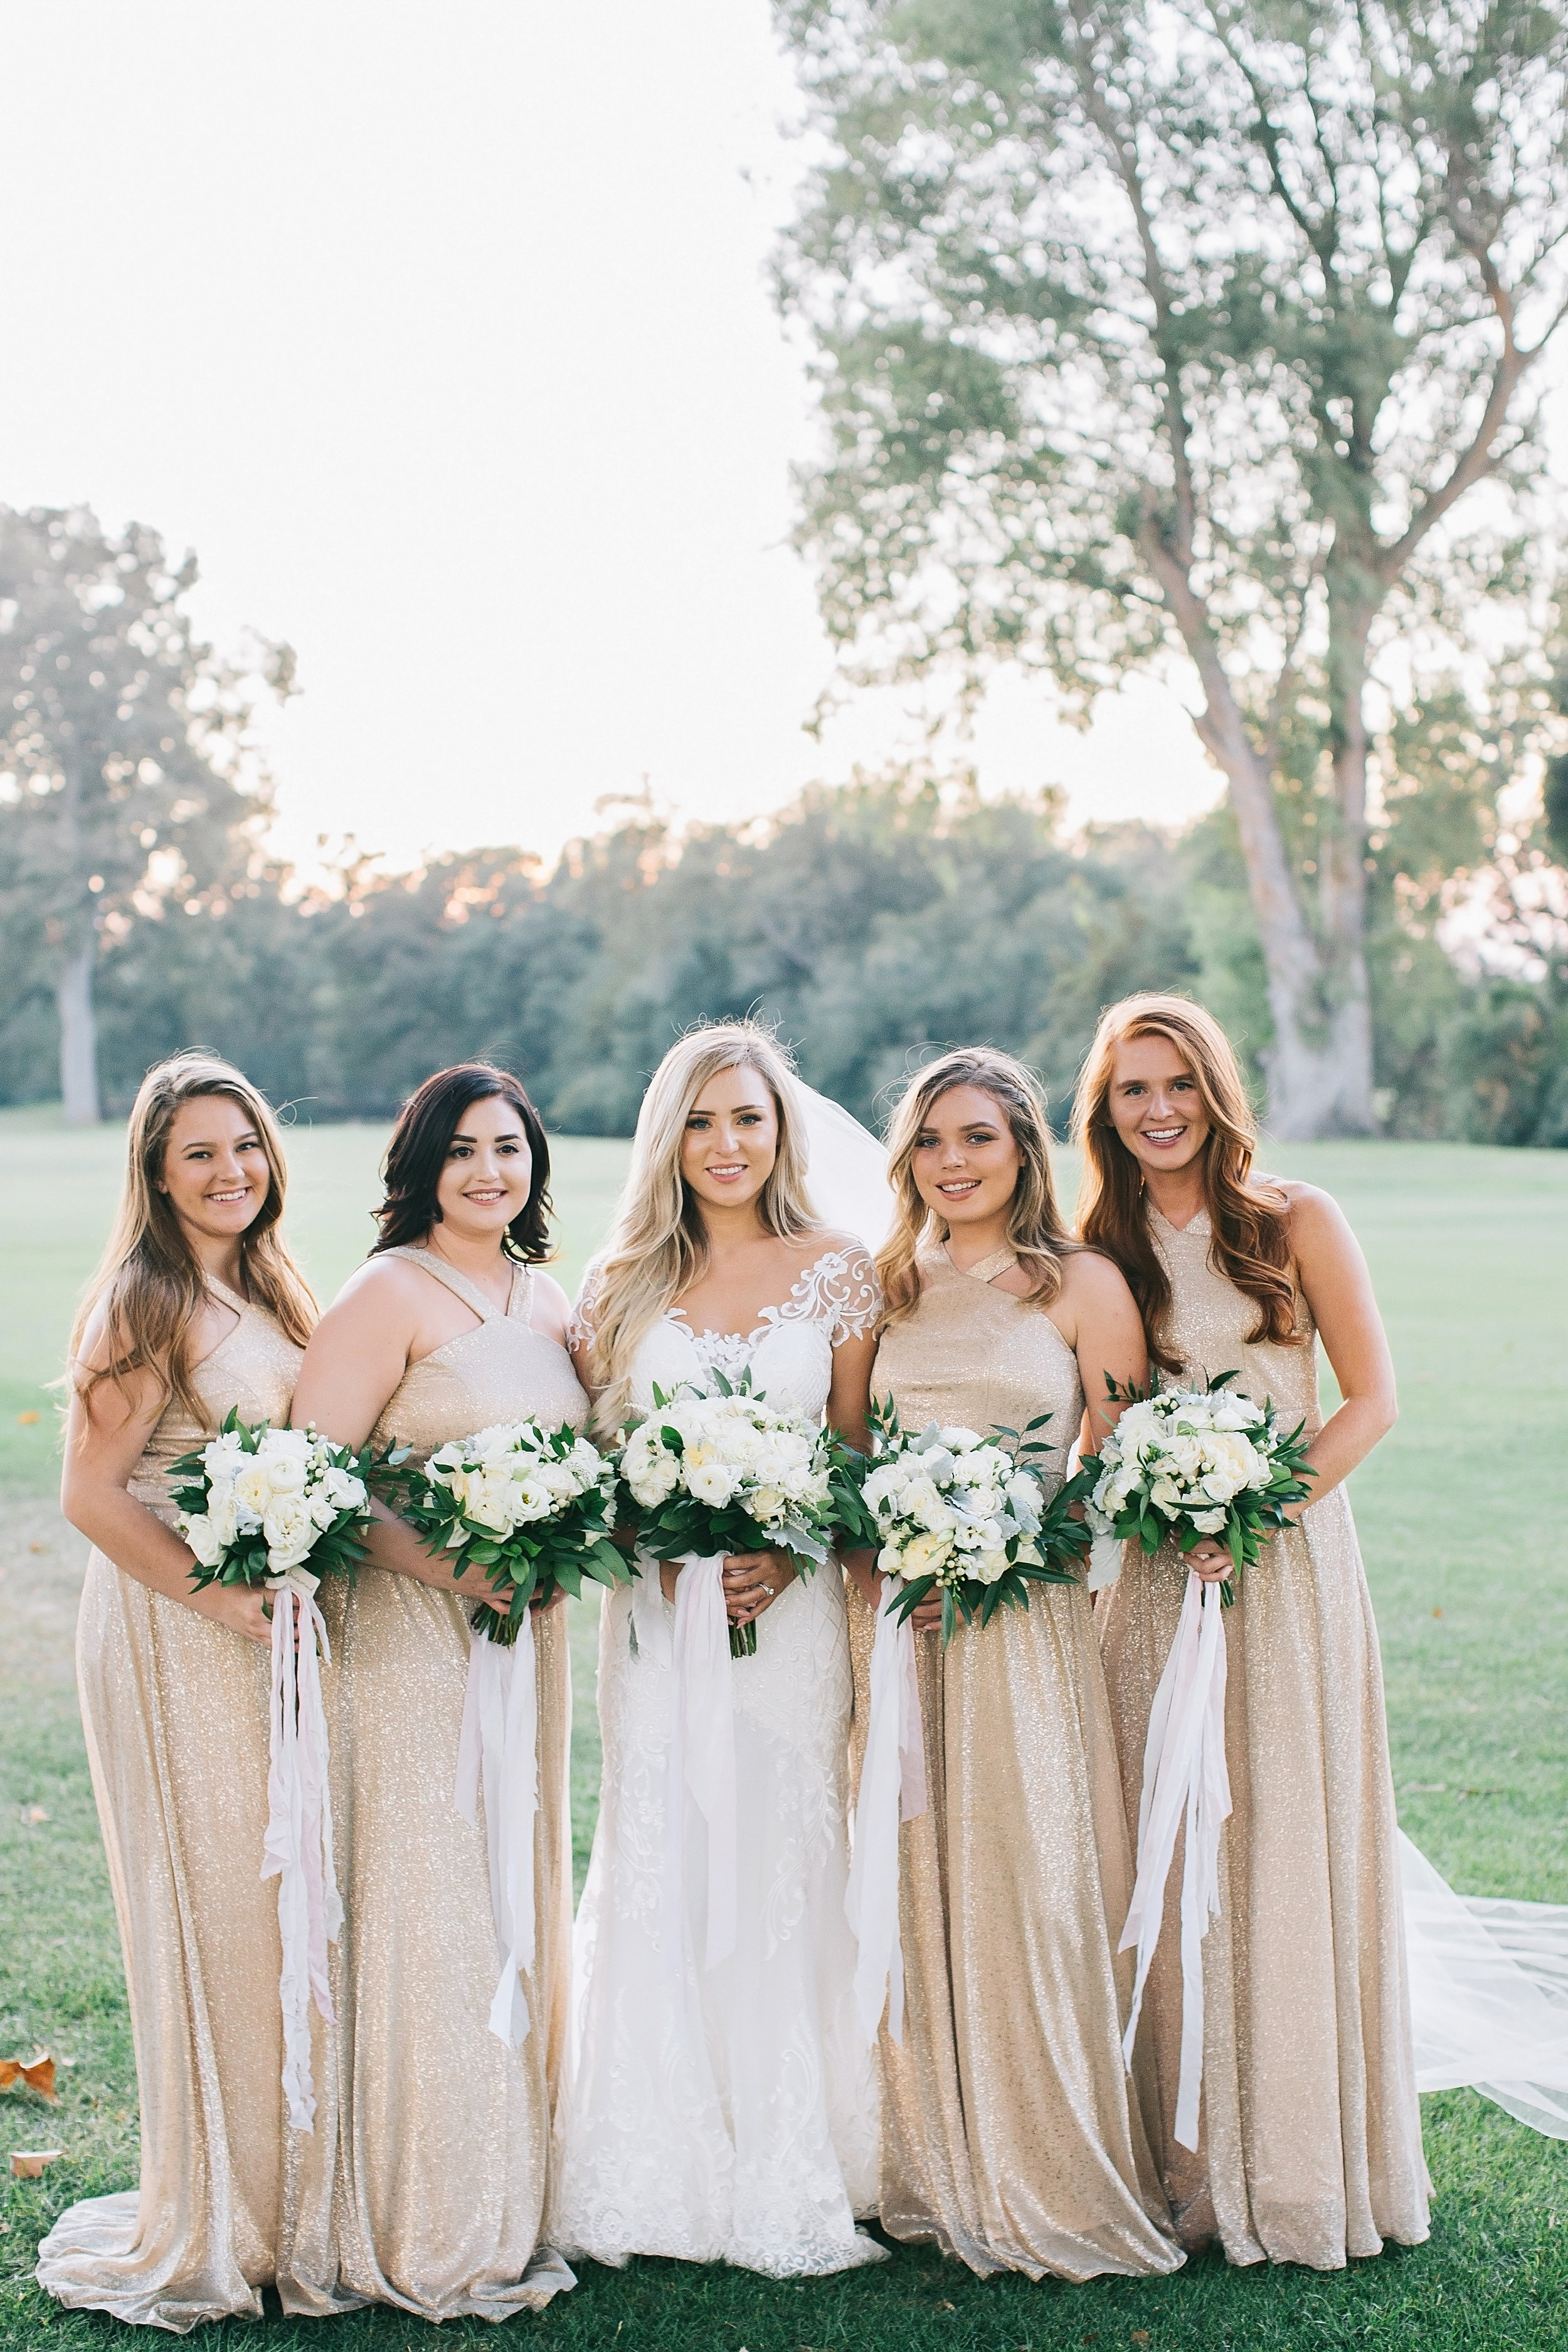 smiling_bride_bouquets_greenery_golf_course_champagne_dresses_violette_fleurs_roseville_anna_perevertaylo.jpg